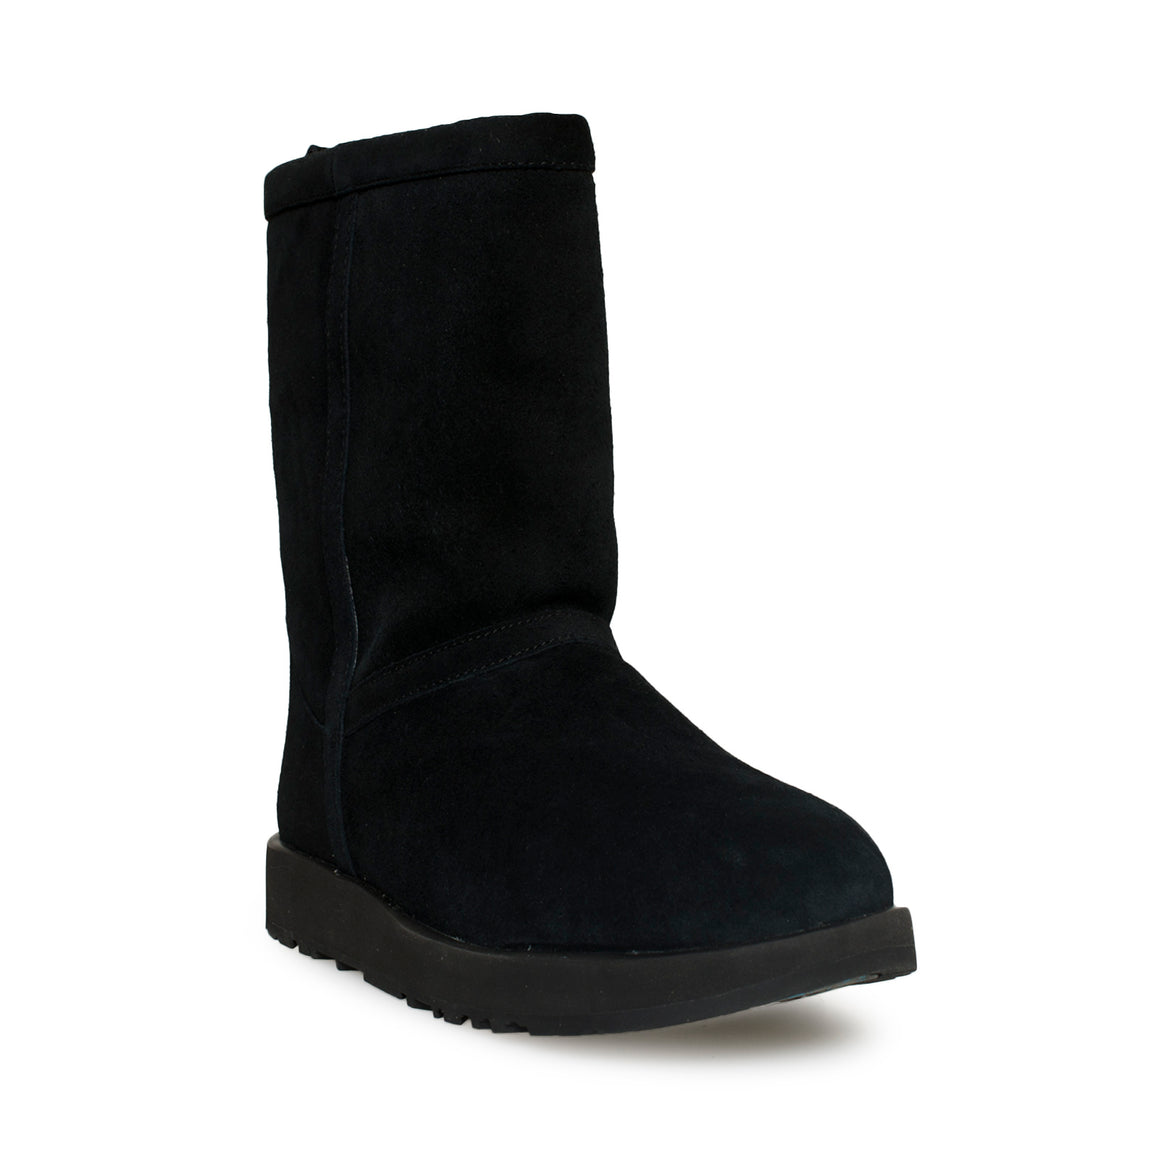 UGG Classic Short Waterproof Black Boots